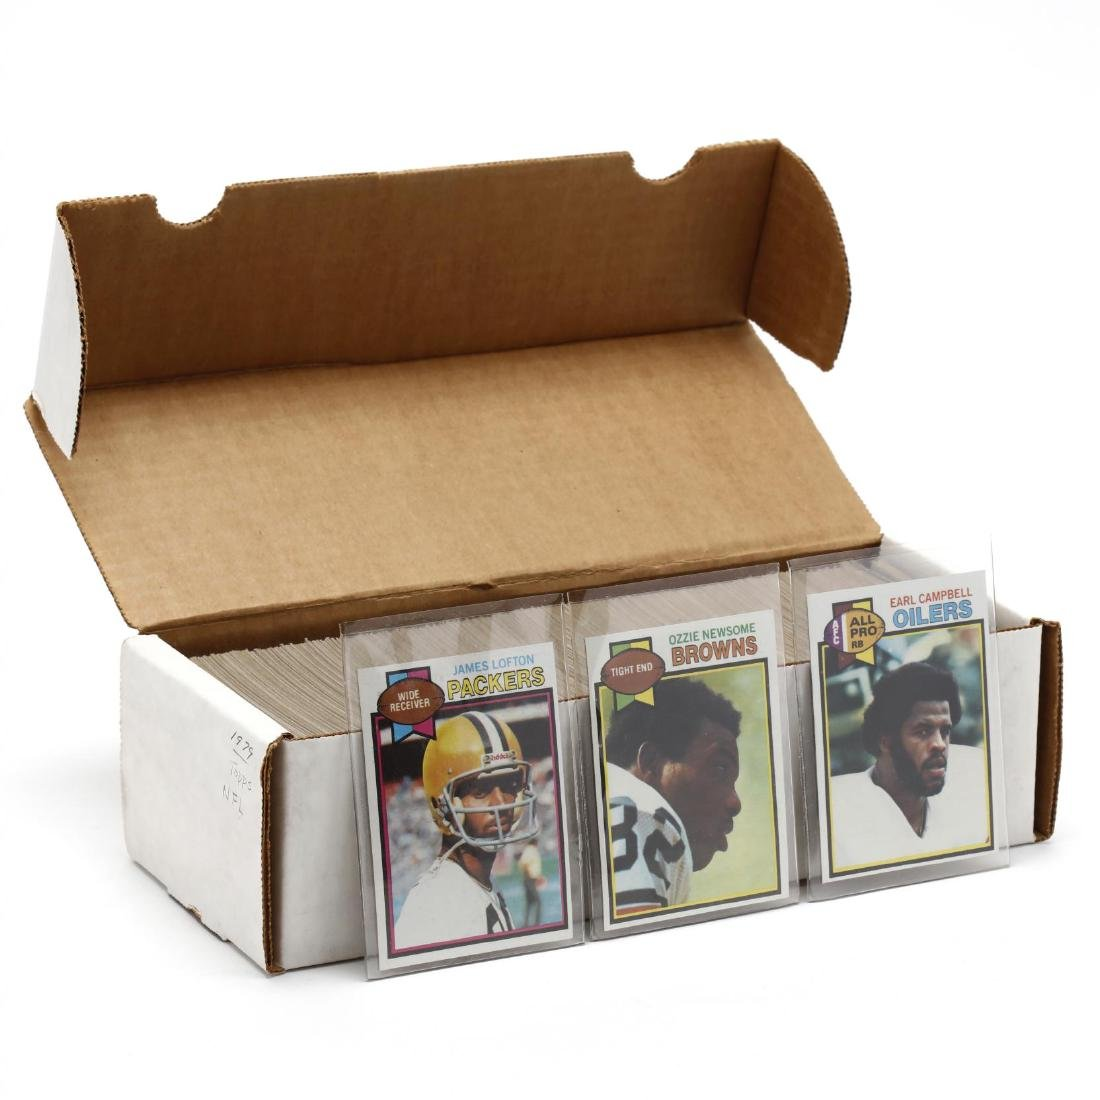 1979 Topps NFL Football Cards with Three Rookie Cards - 2